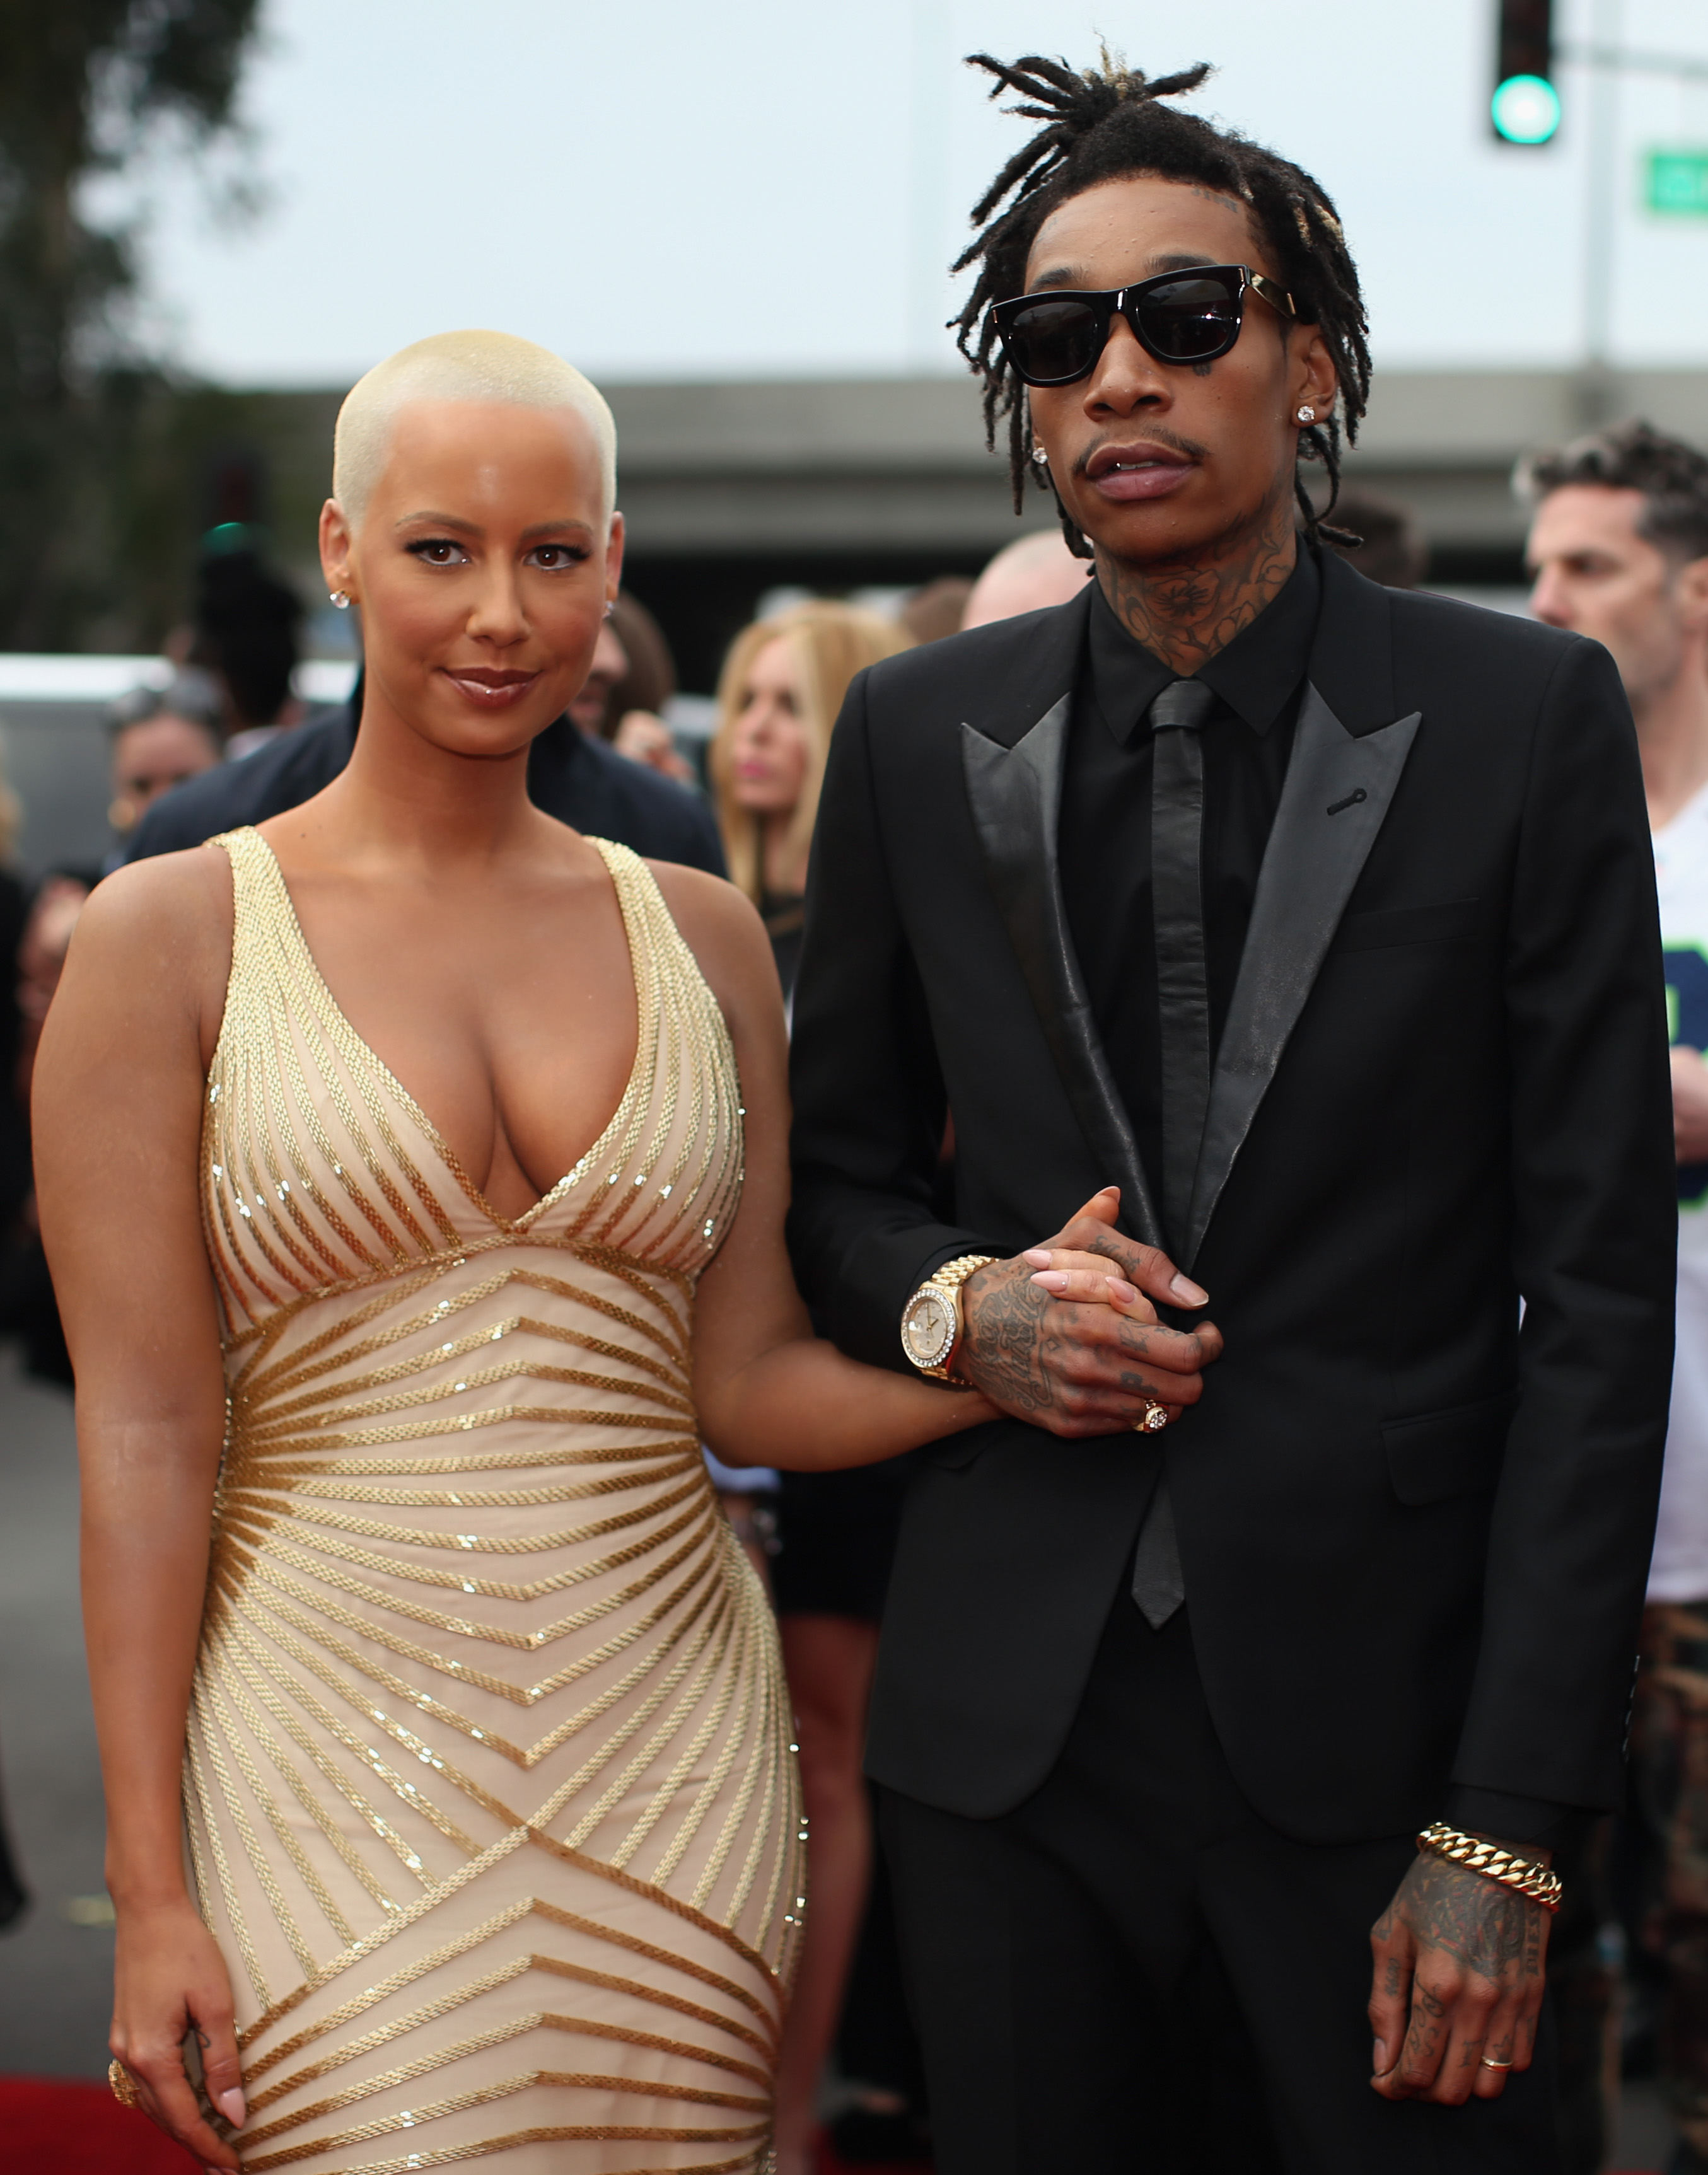 Amber Rose Wiz Khalifa S Wedding Pictures Make It Clear They Re The Next Photos